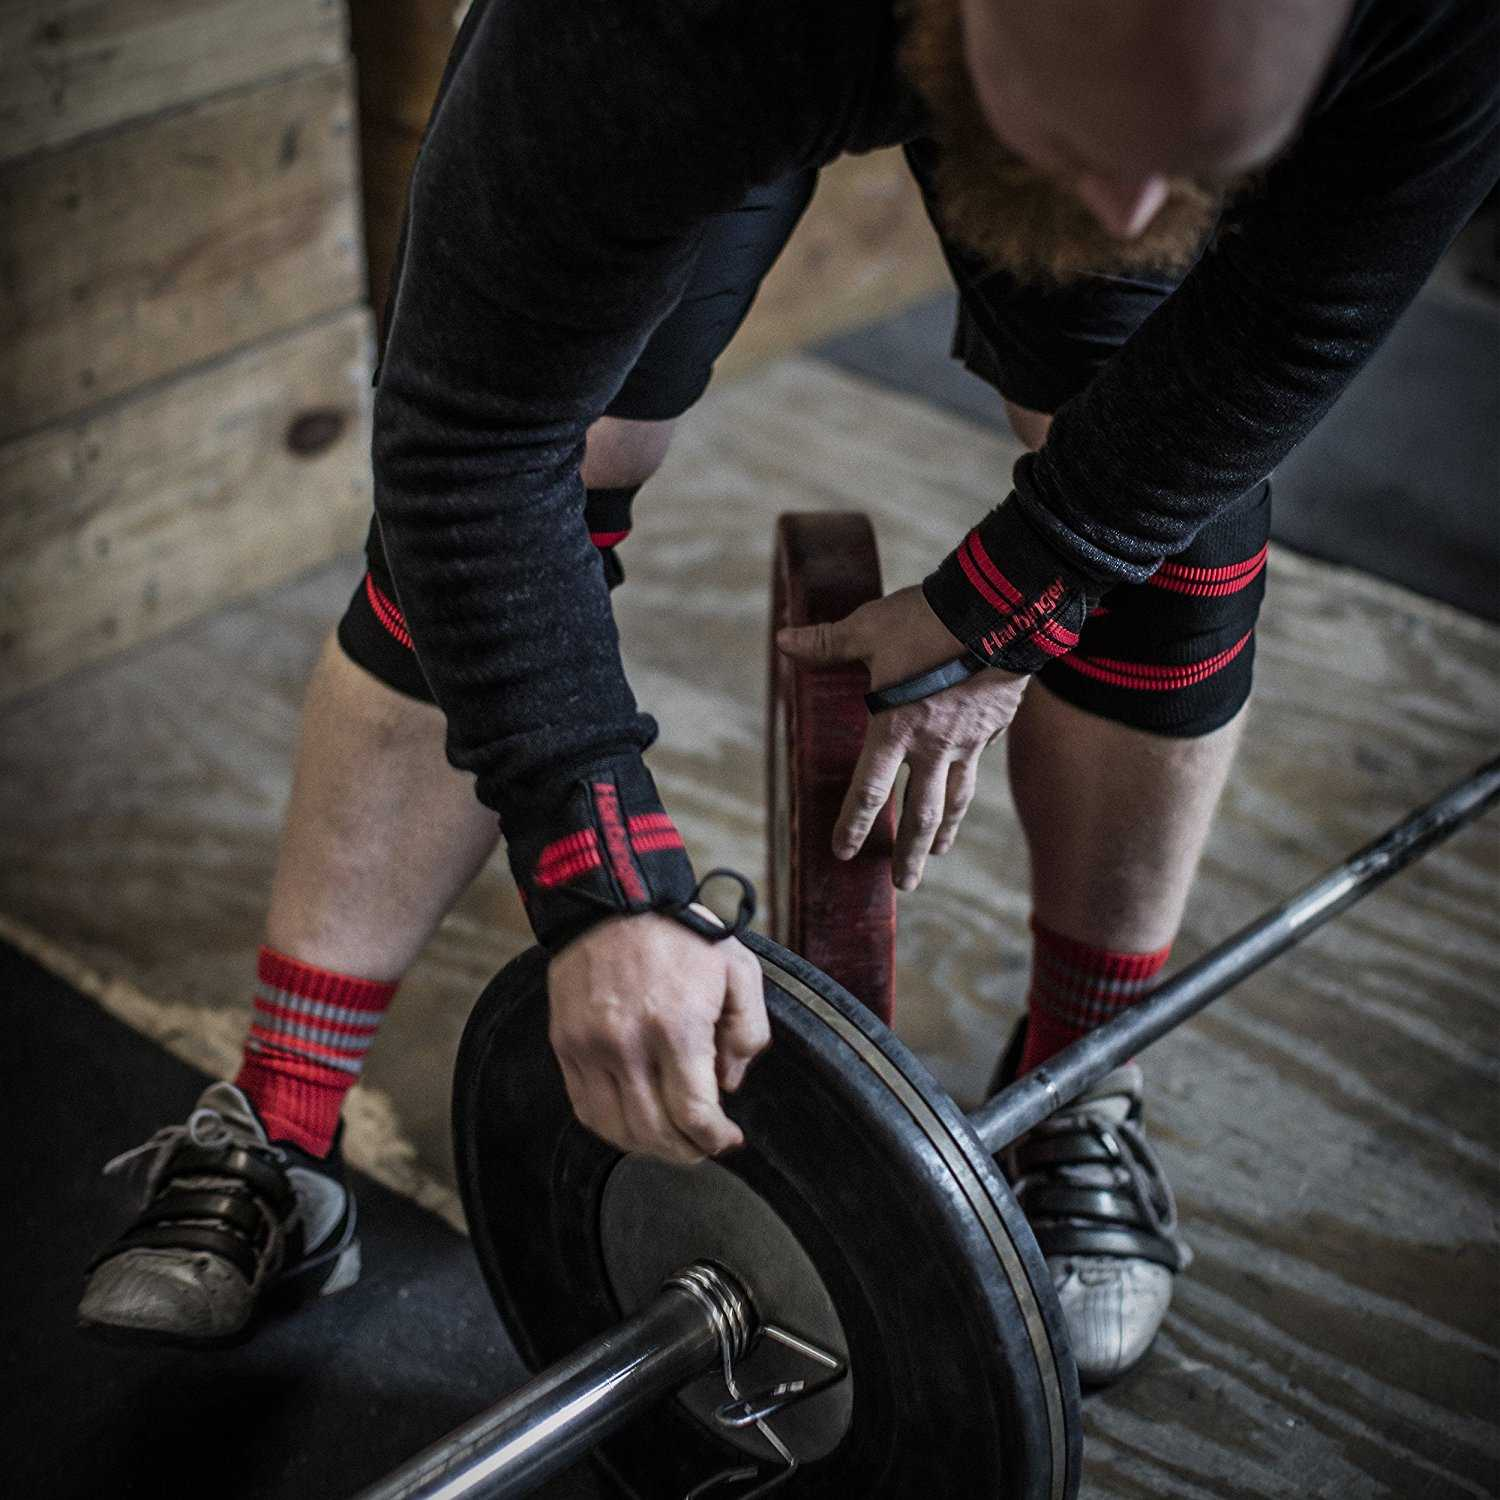 Powerlifter wearing Harbinger wrist wraps